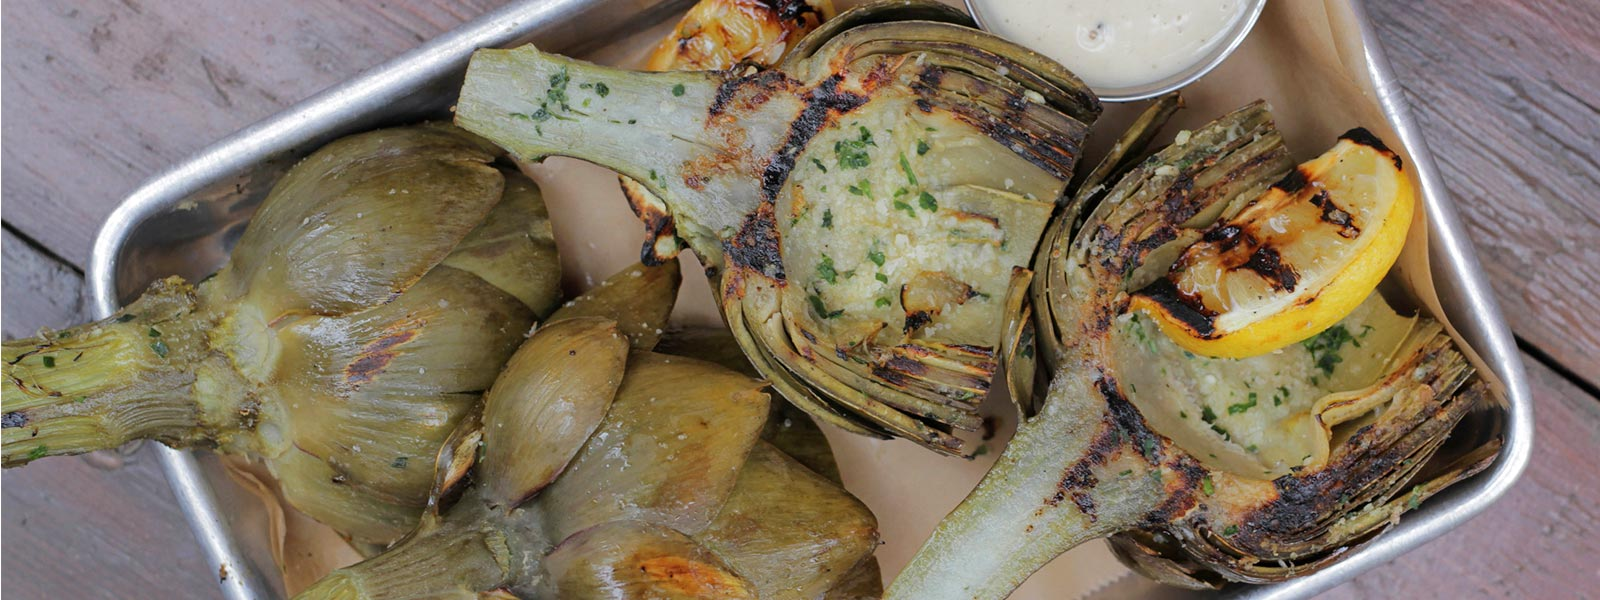 Artichokes: A Family Affair